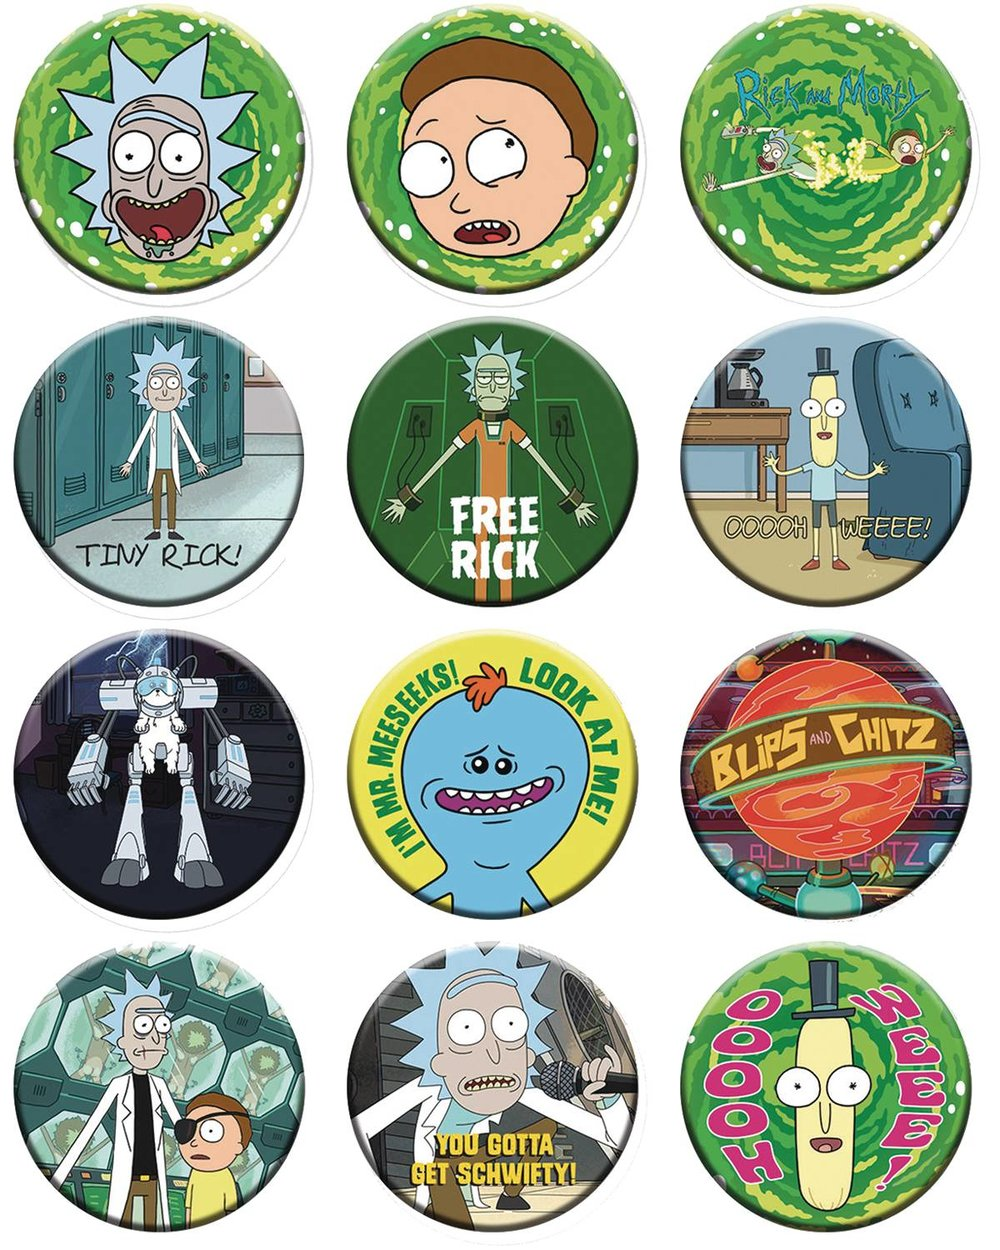 RICK AND MORTY 1-1 4IN 144 PIECE BUTTON ASST.jpg